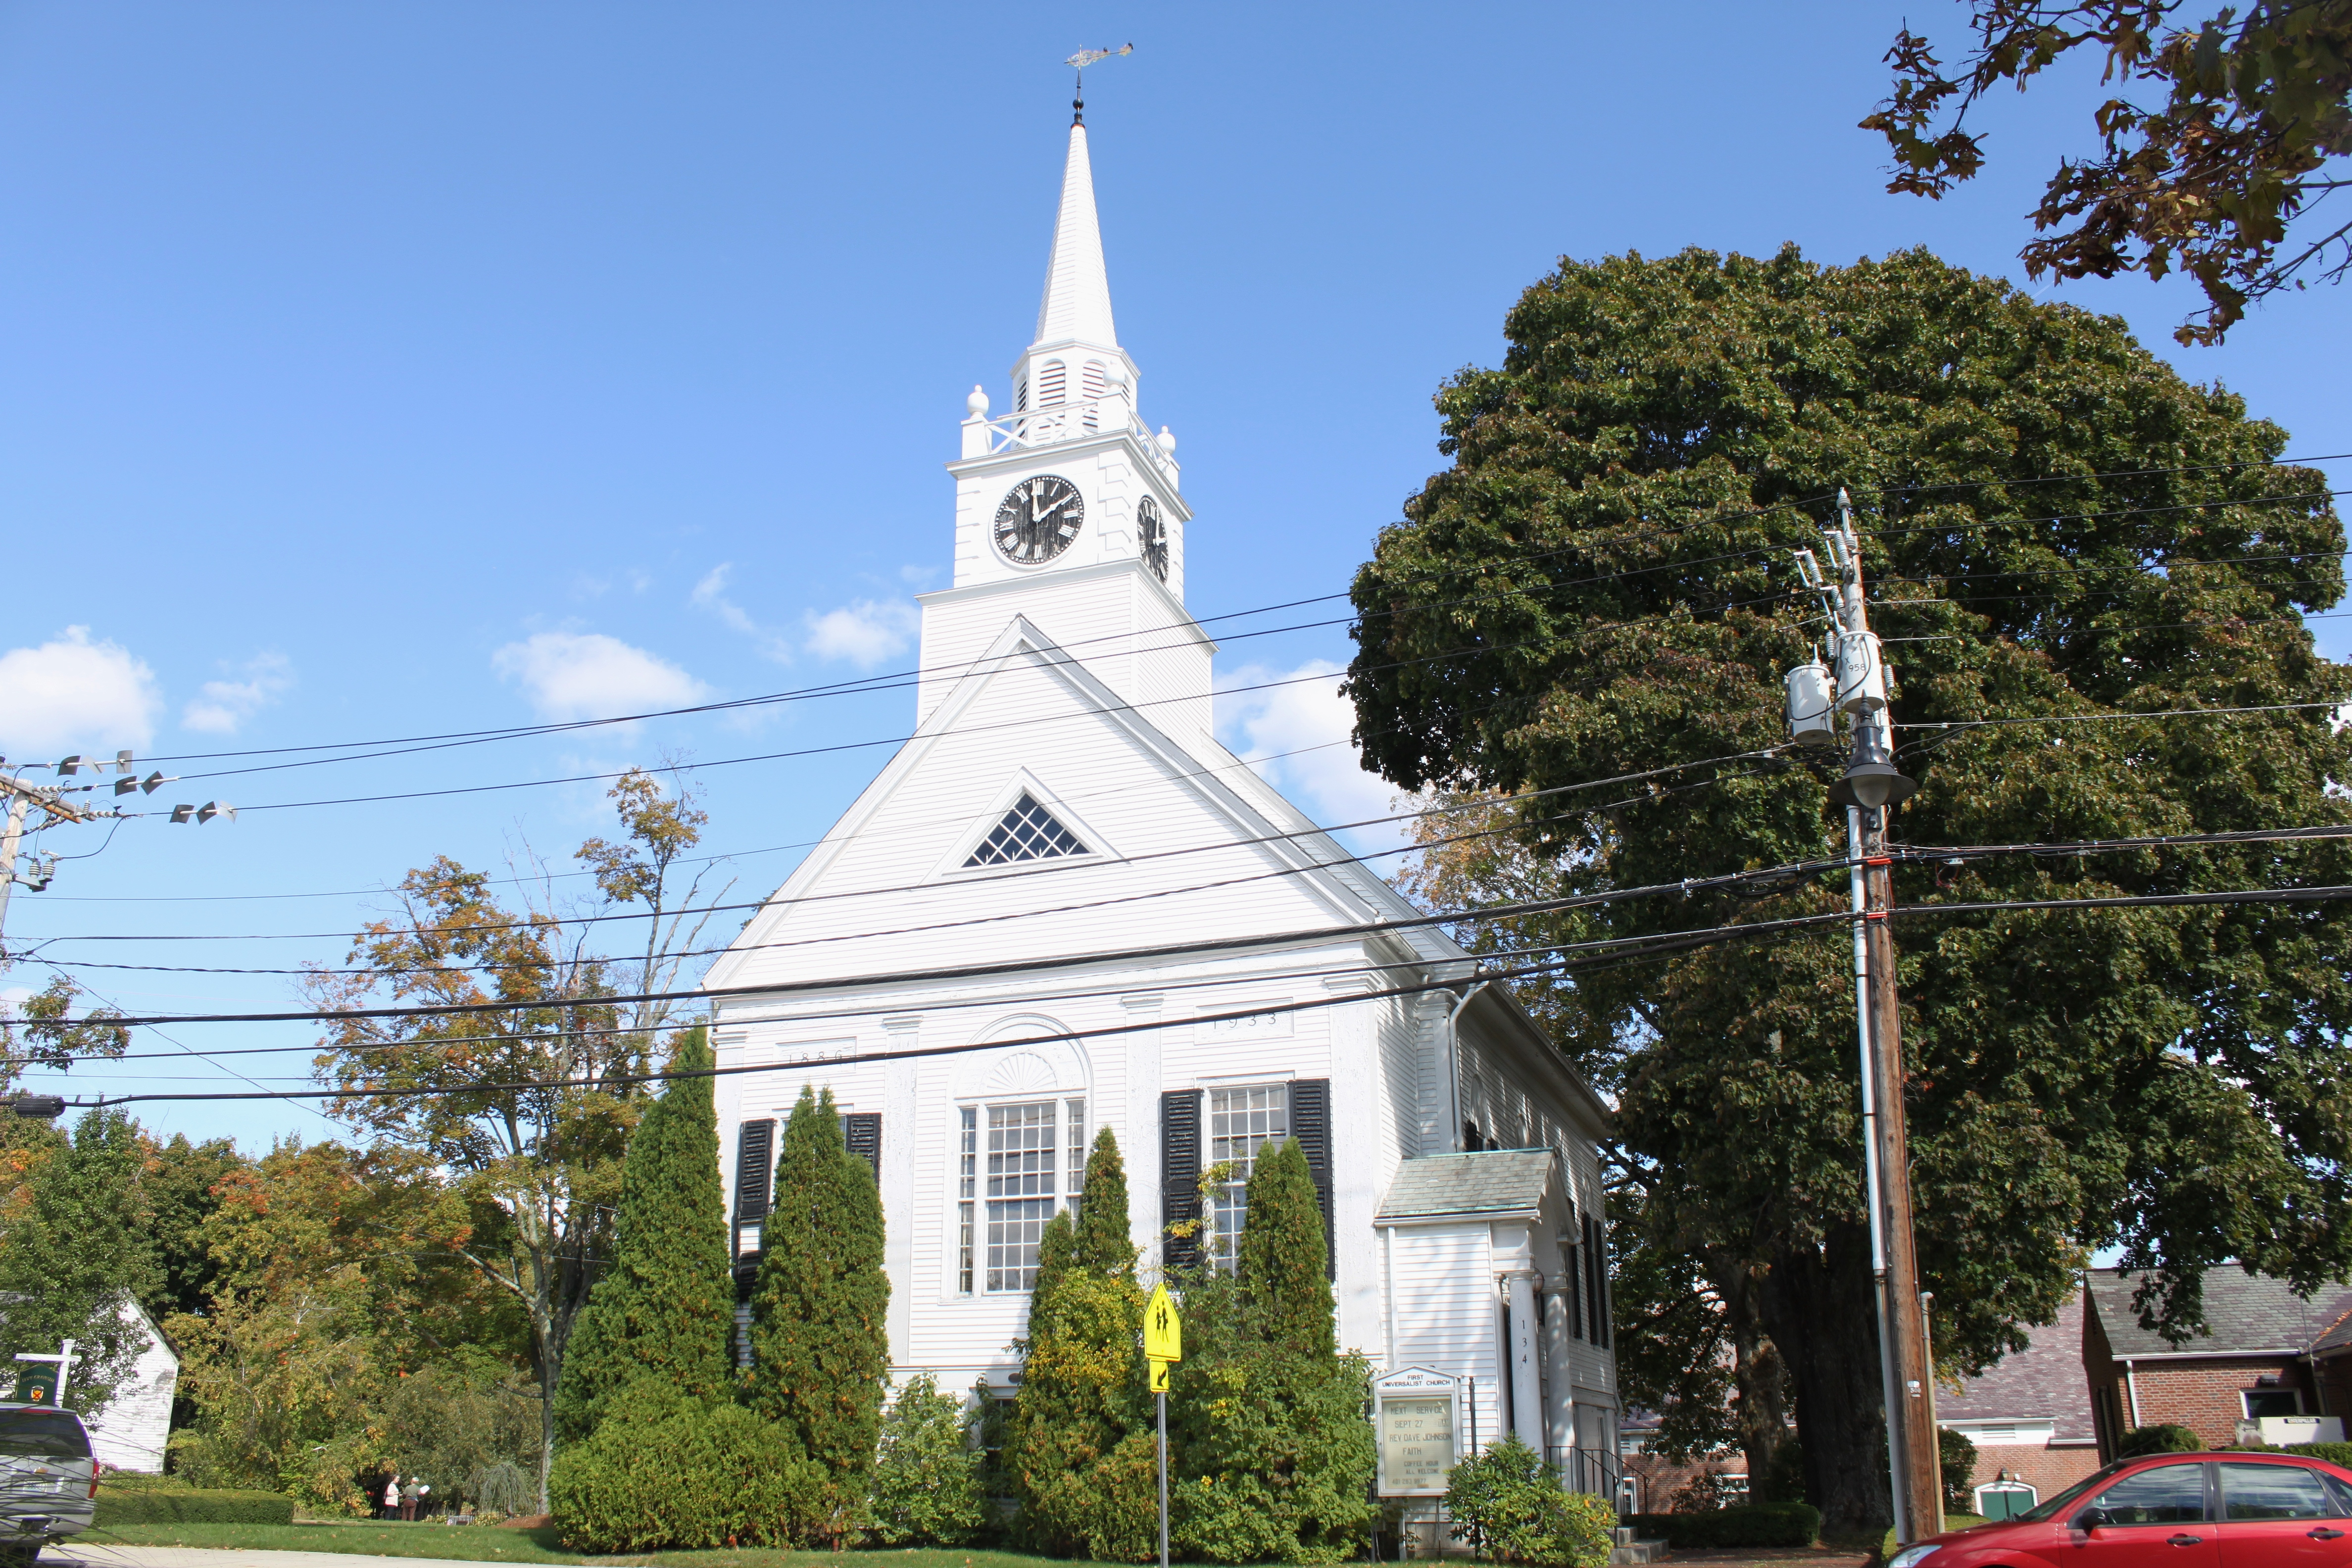 The First Universalist Church, on Main St. in downtown Harrisville, was originally built in the gothic style. But Austin T. Levy spearheaded a facelift in 1933 to make it look more colonial.